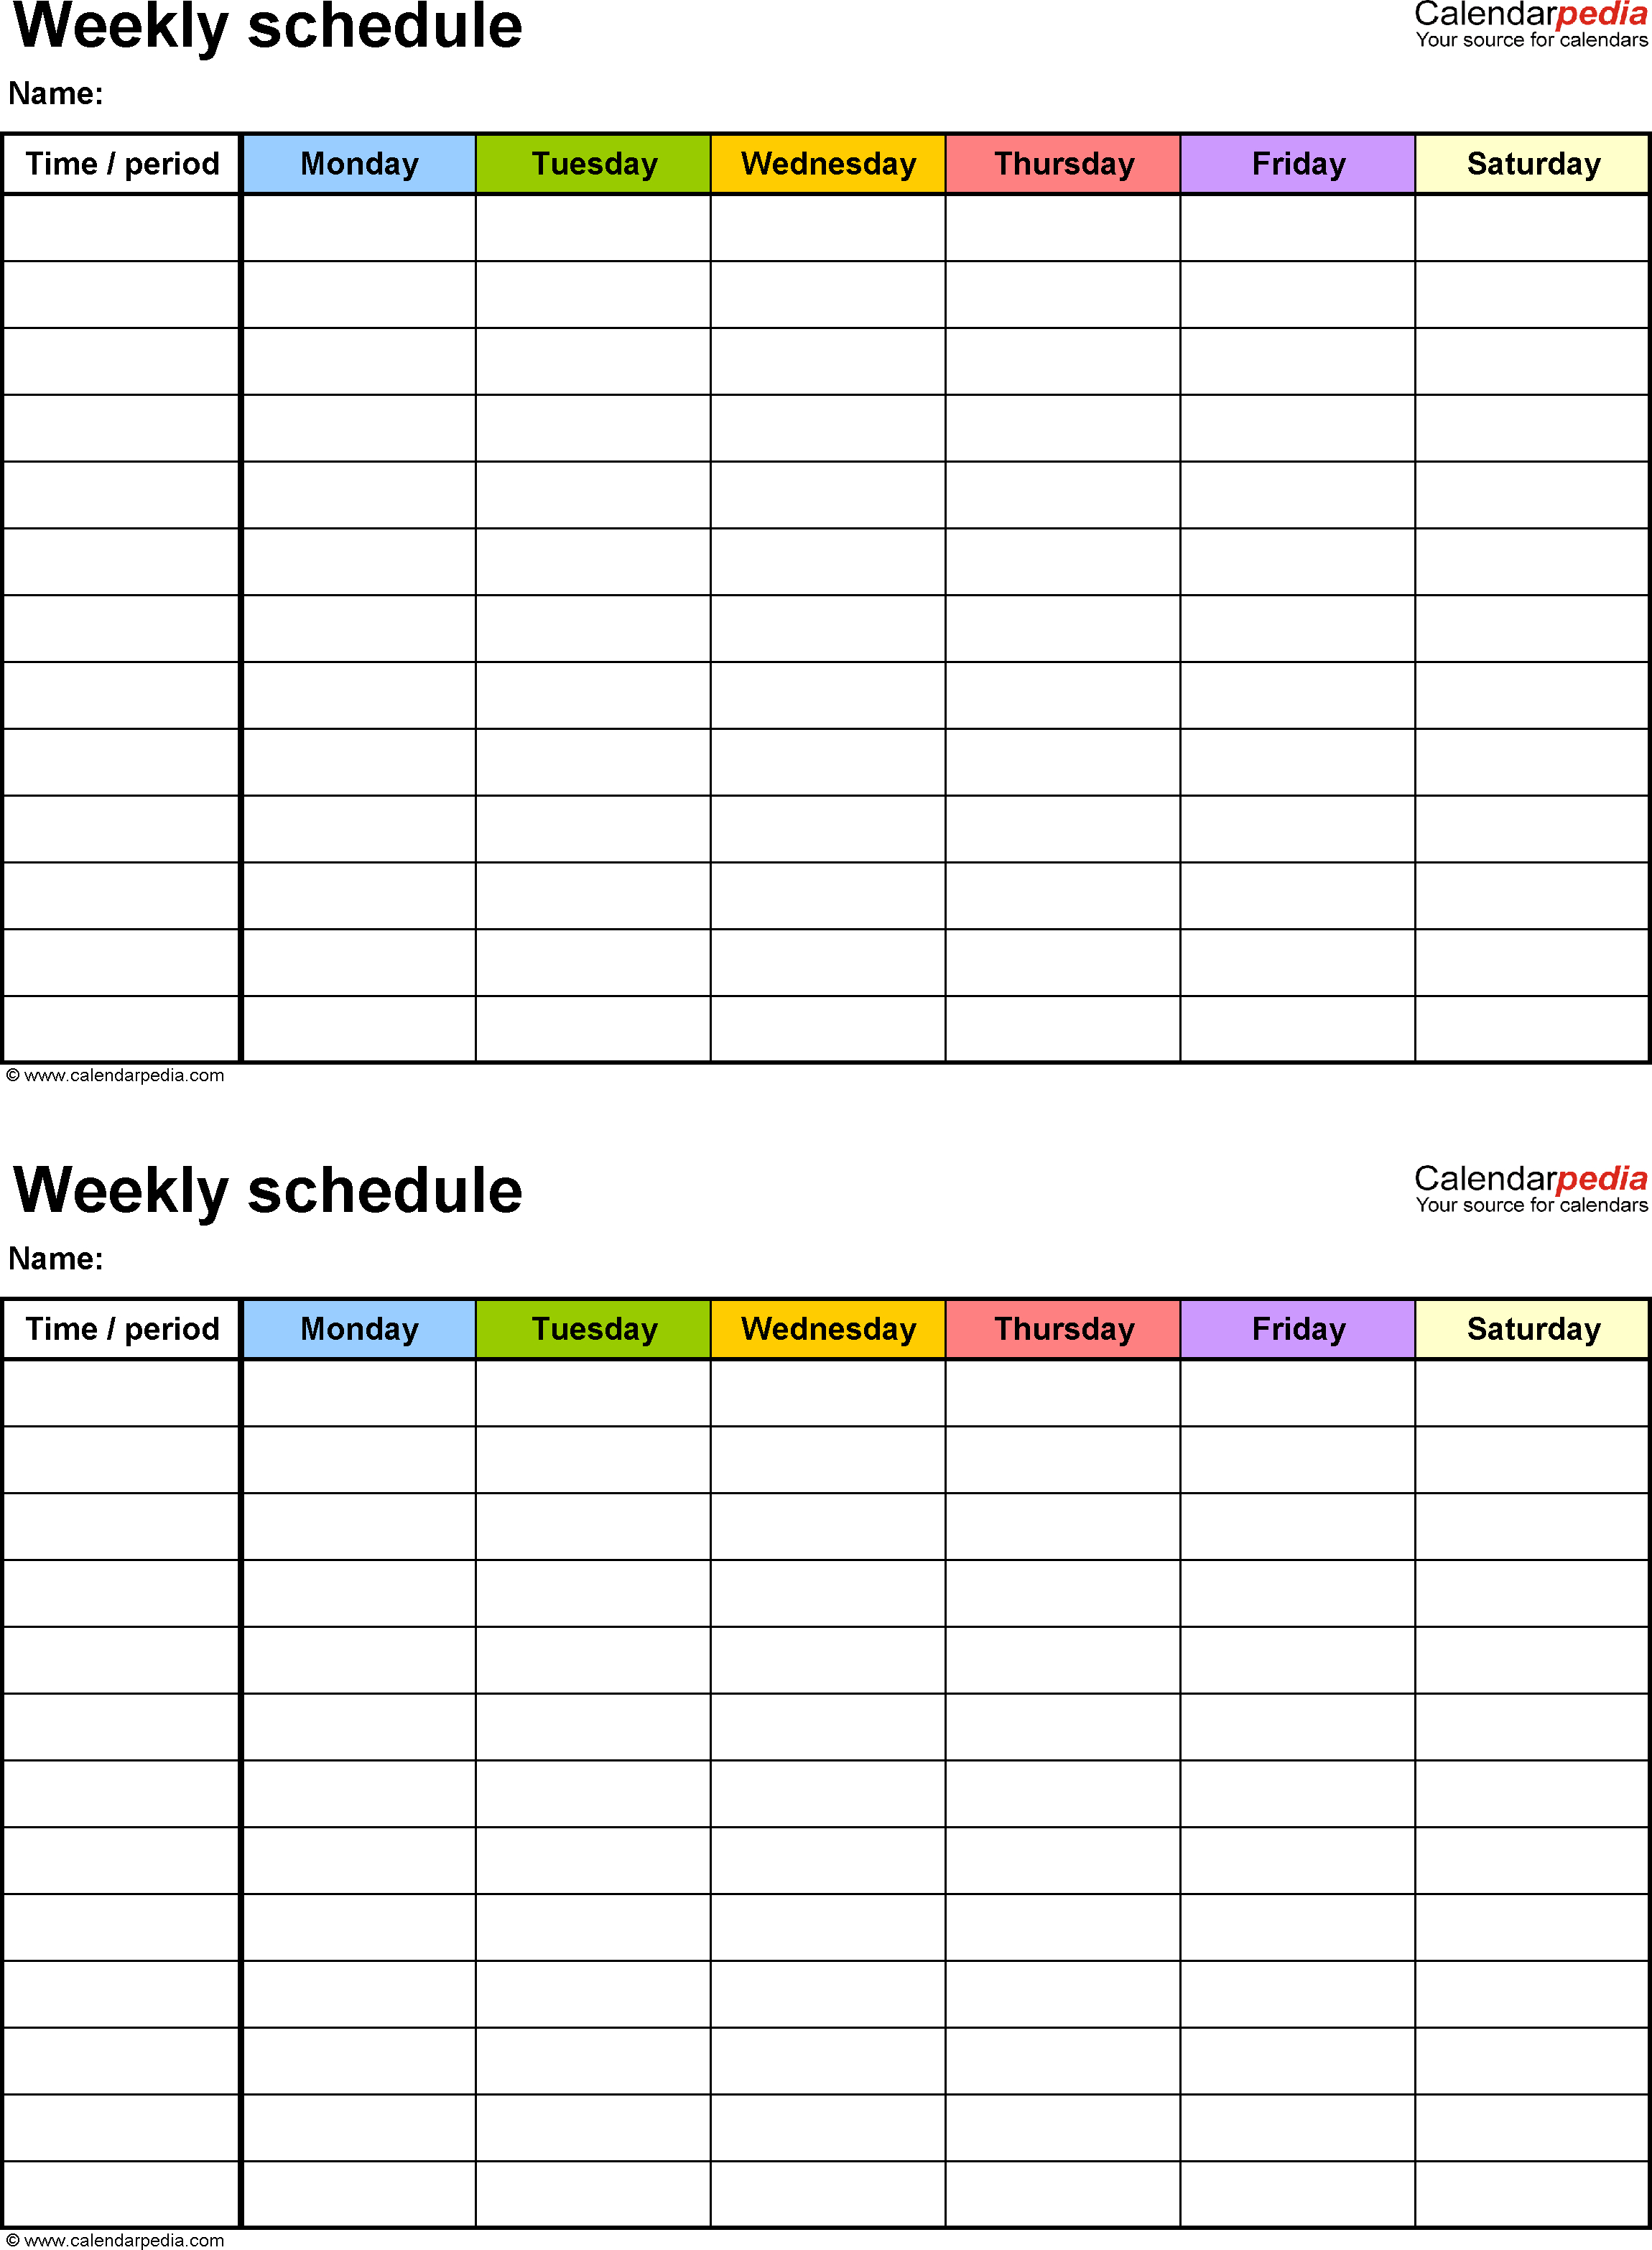 Free Weekly Schedule Templates For Word - 18 Templates inside Weekly Planner Template For Students